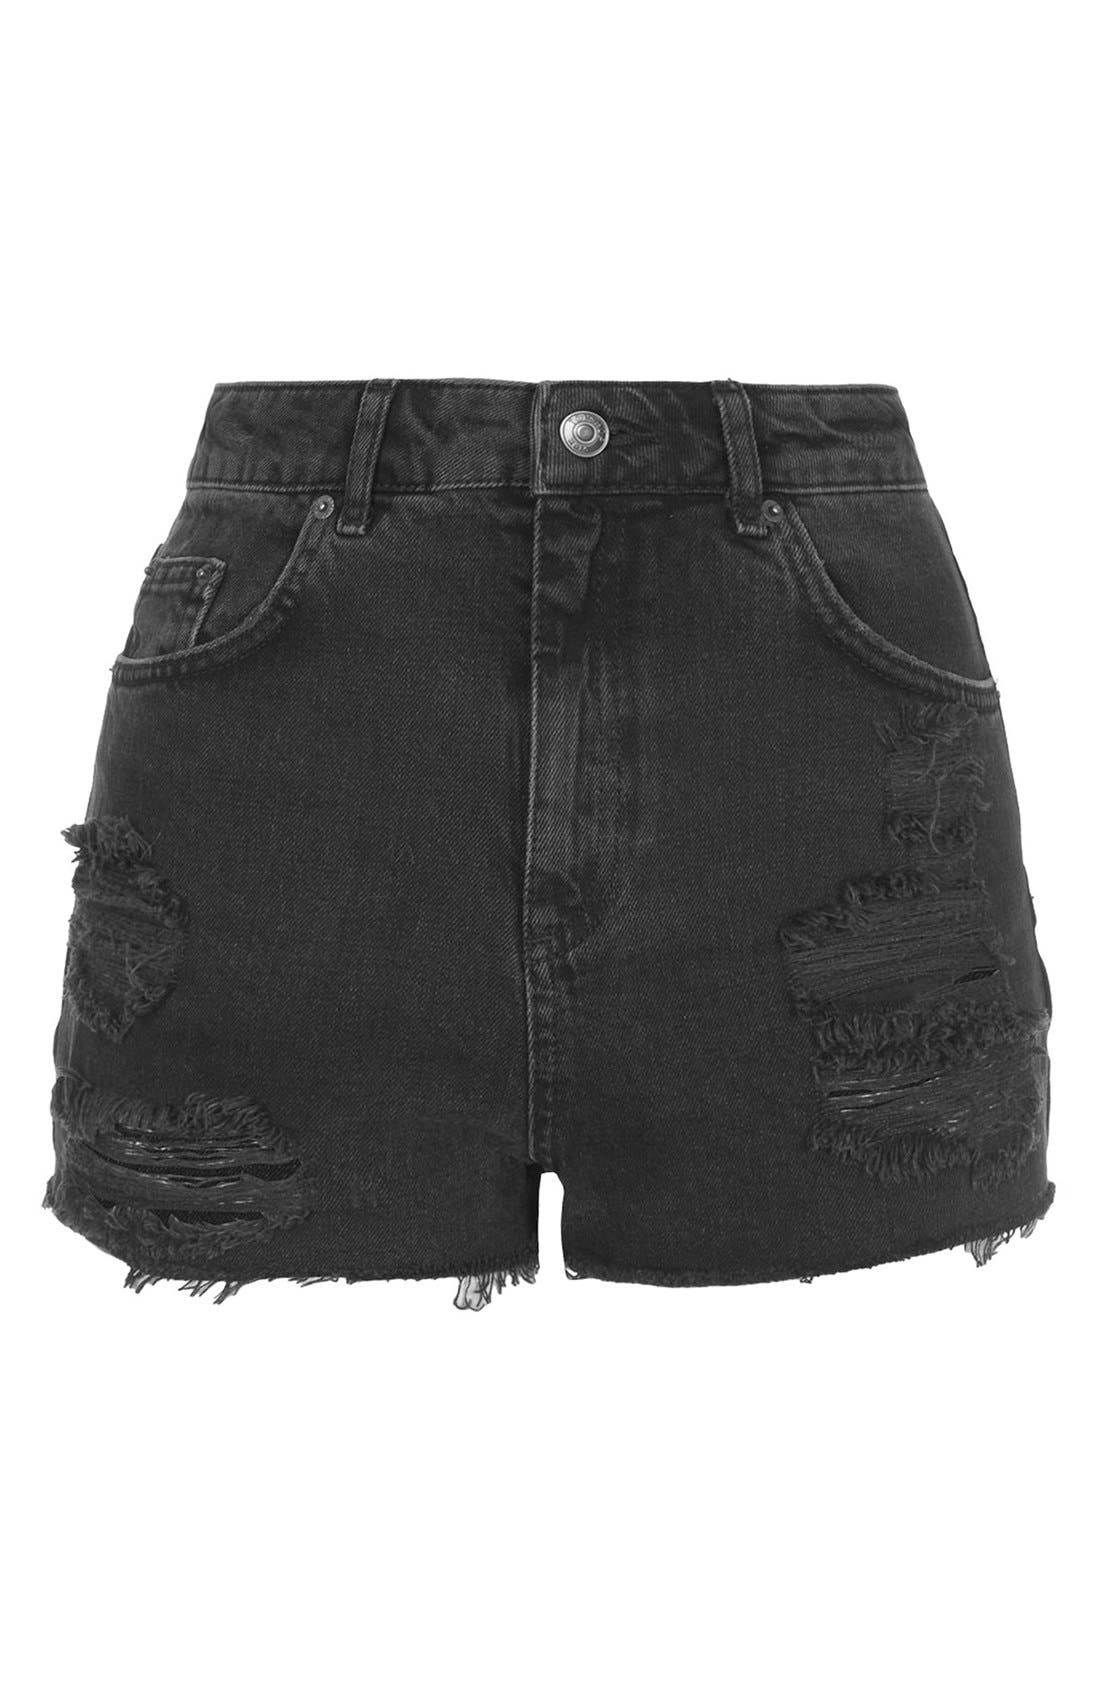 Moto Ripped Shorts,                             Alternate thumbnail 5, color,                             001